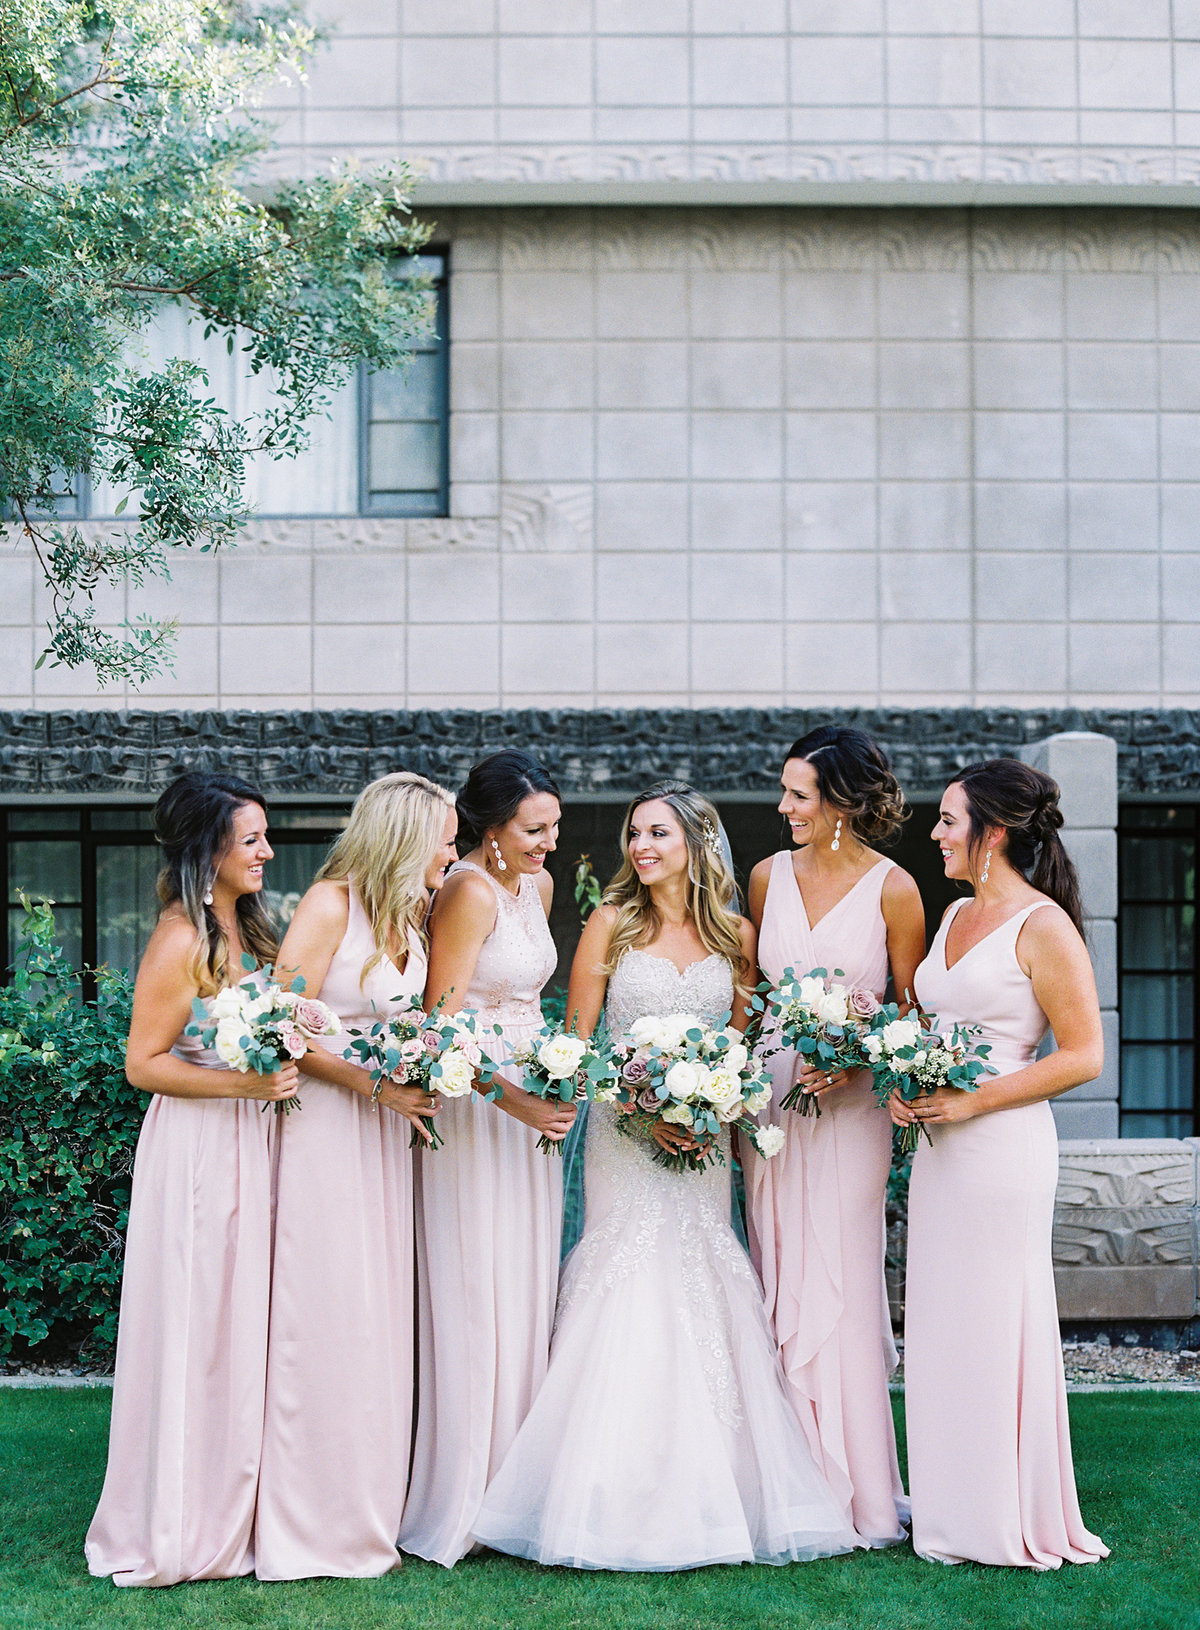 Arizona Biltmore Wedding - Mary Claire Photography-47